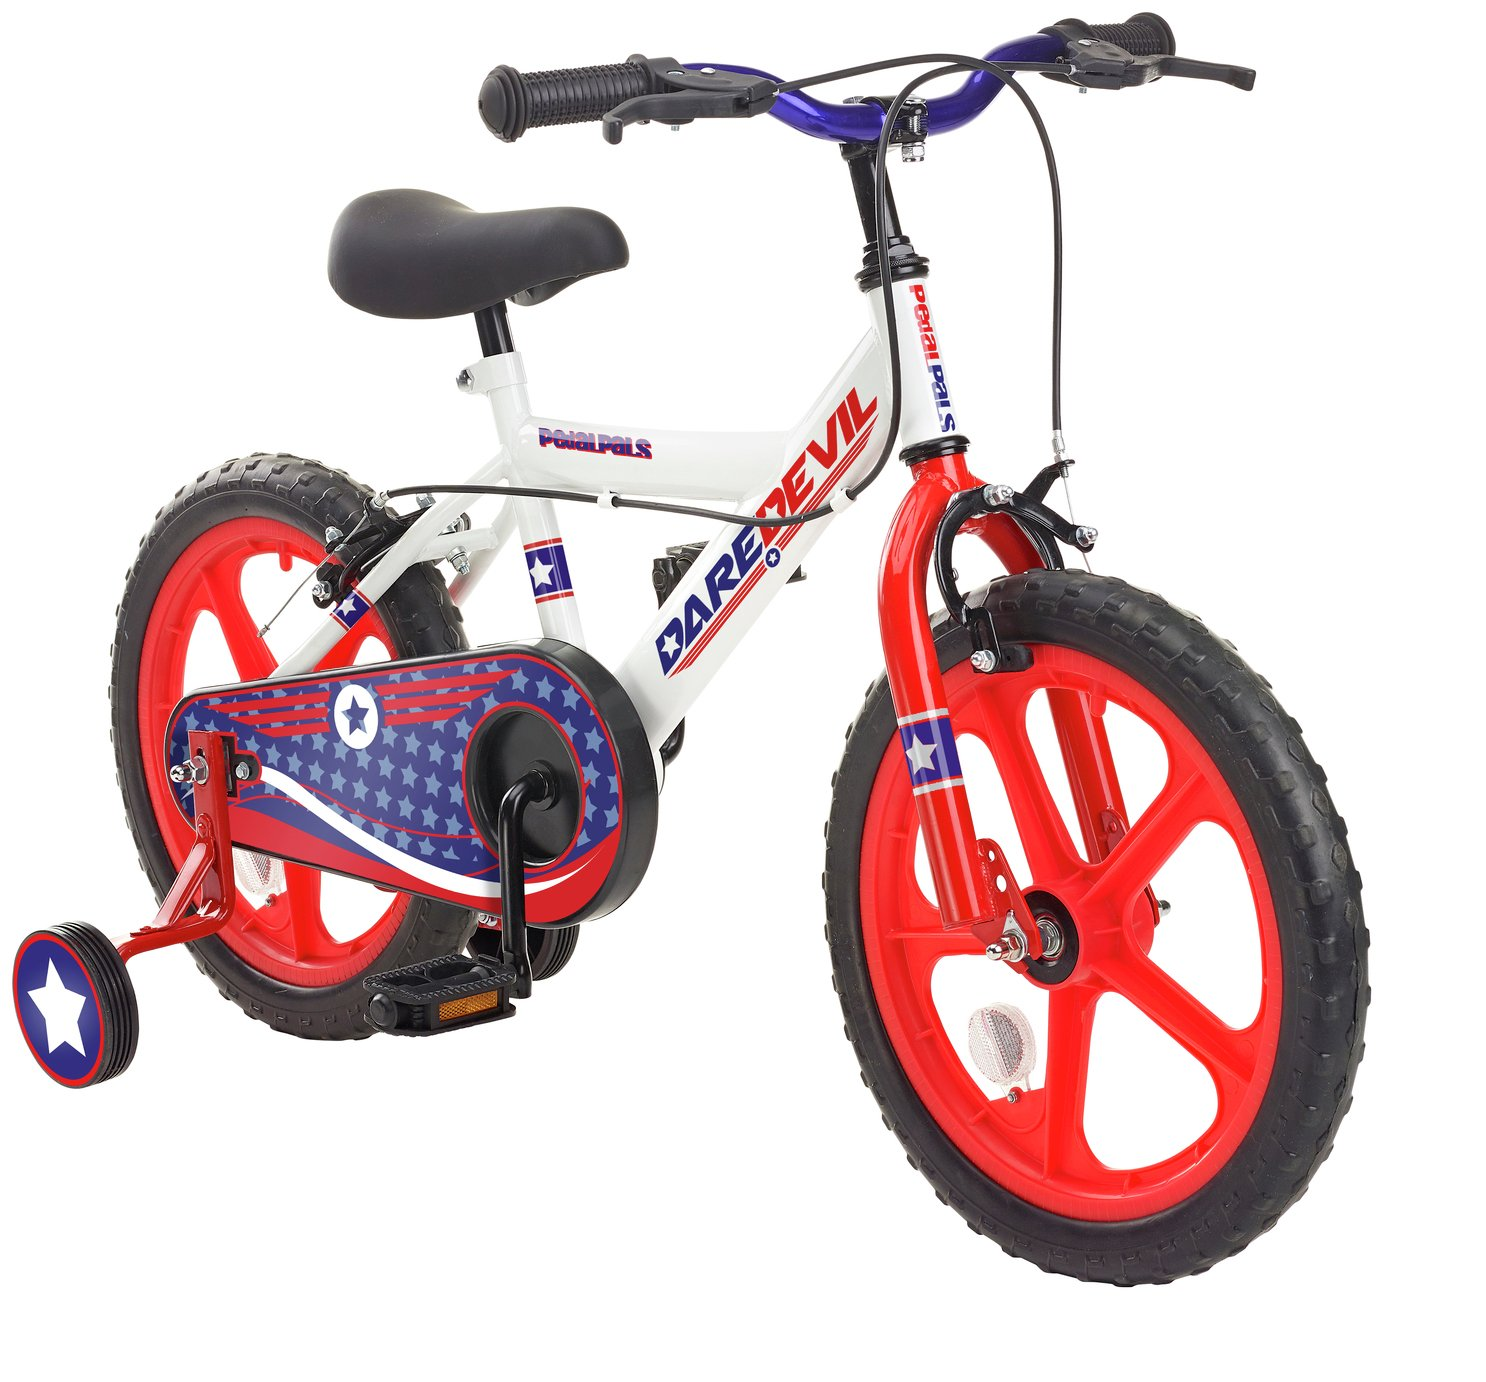 Pedal Pals 16 Inch Daredevil Kids Bike